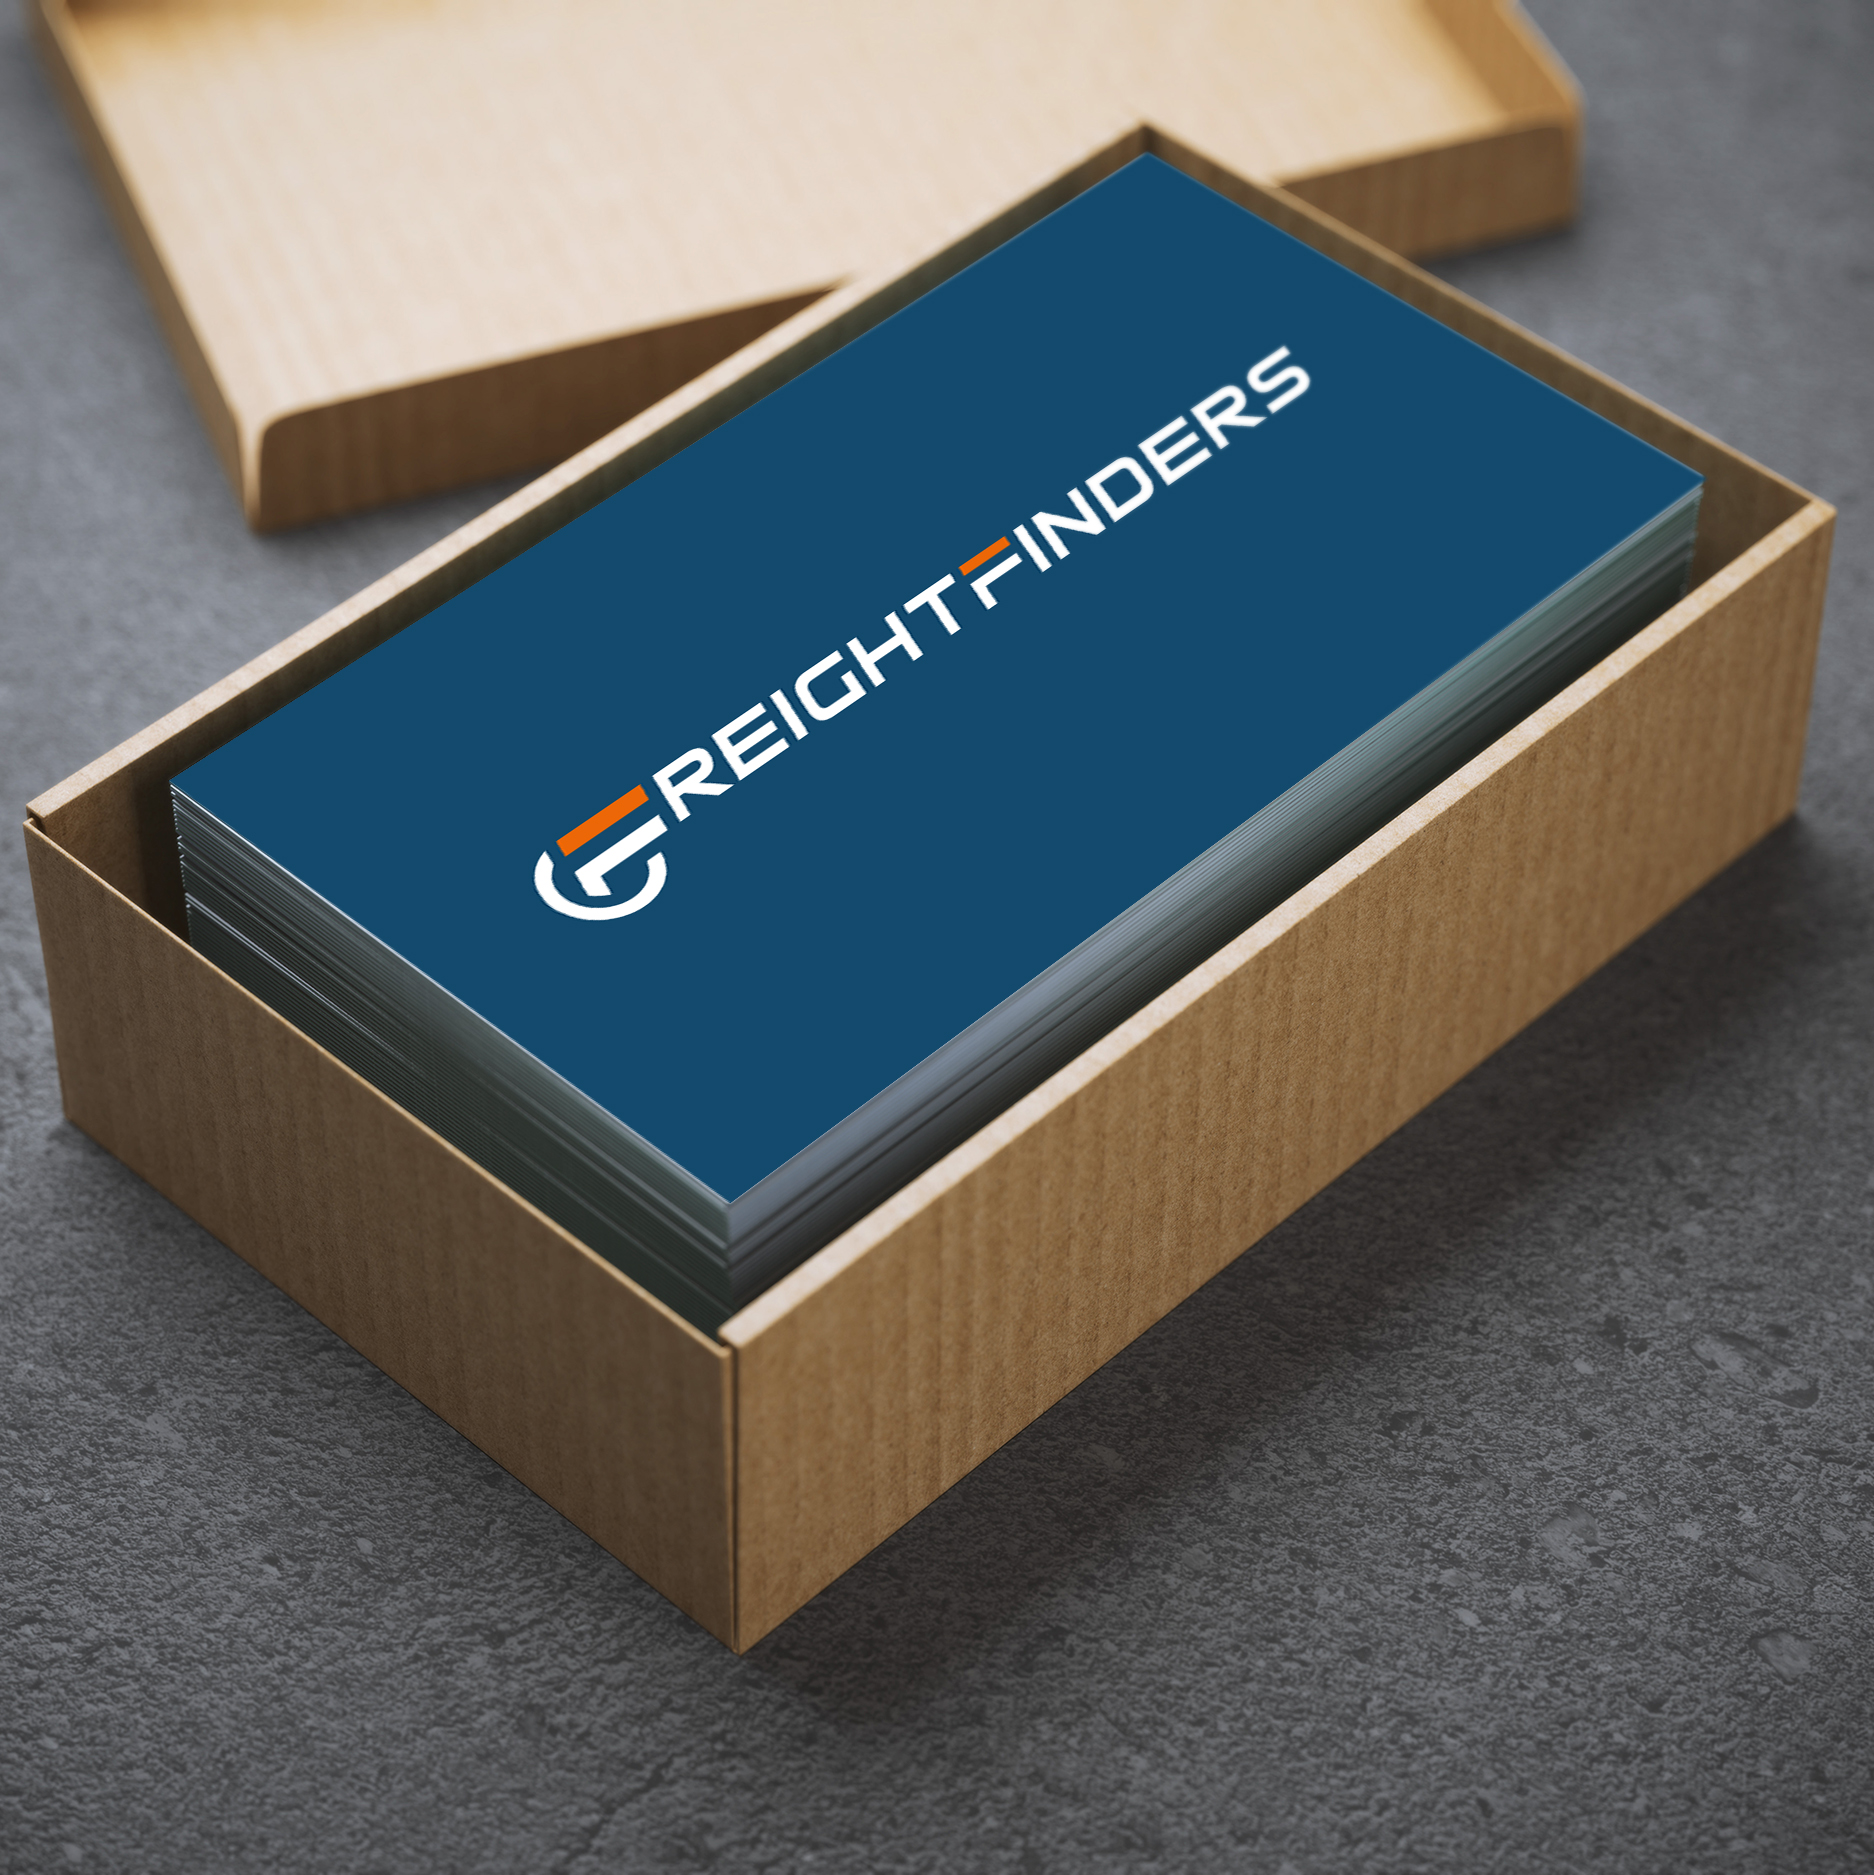 business-card-in-cardboard-box-mockup-free-psd.jpg